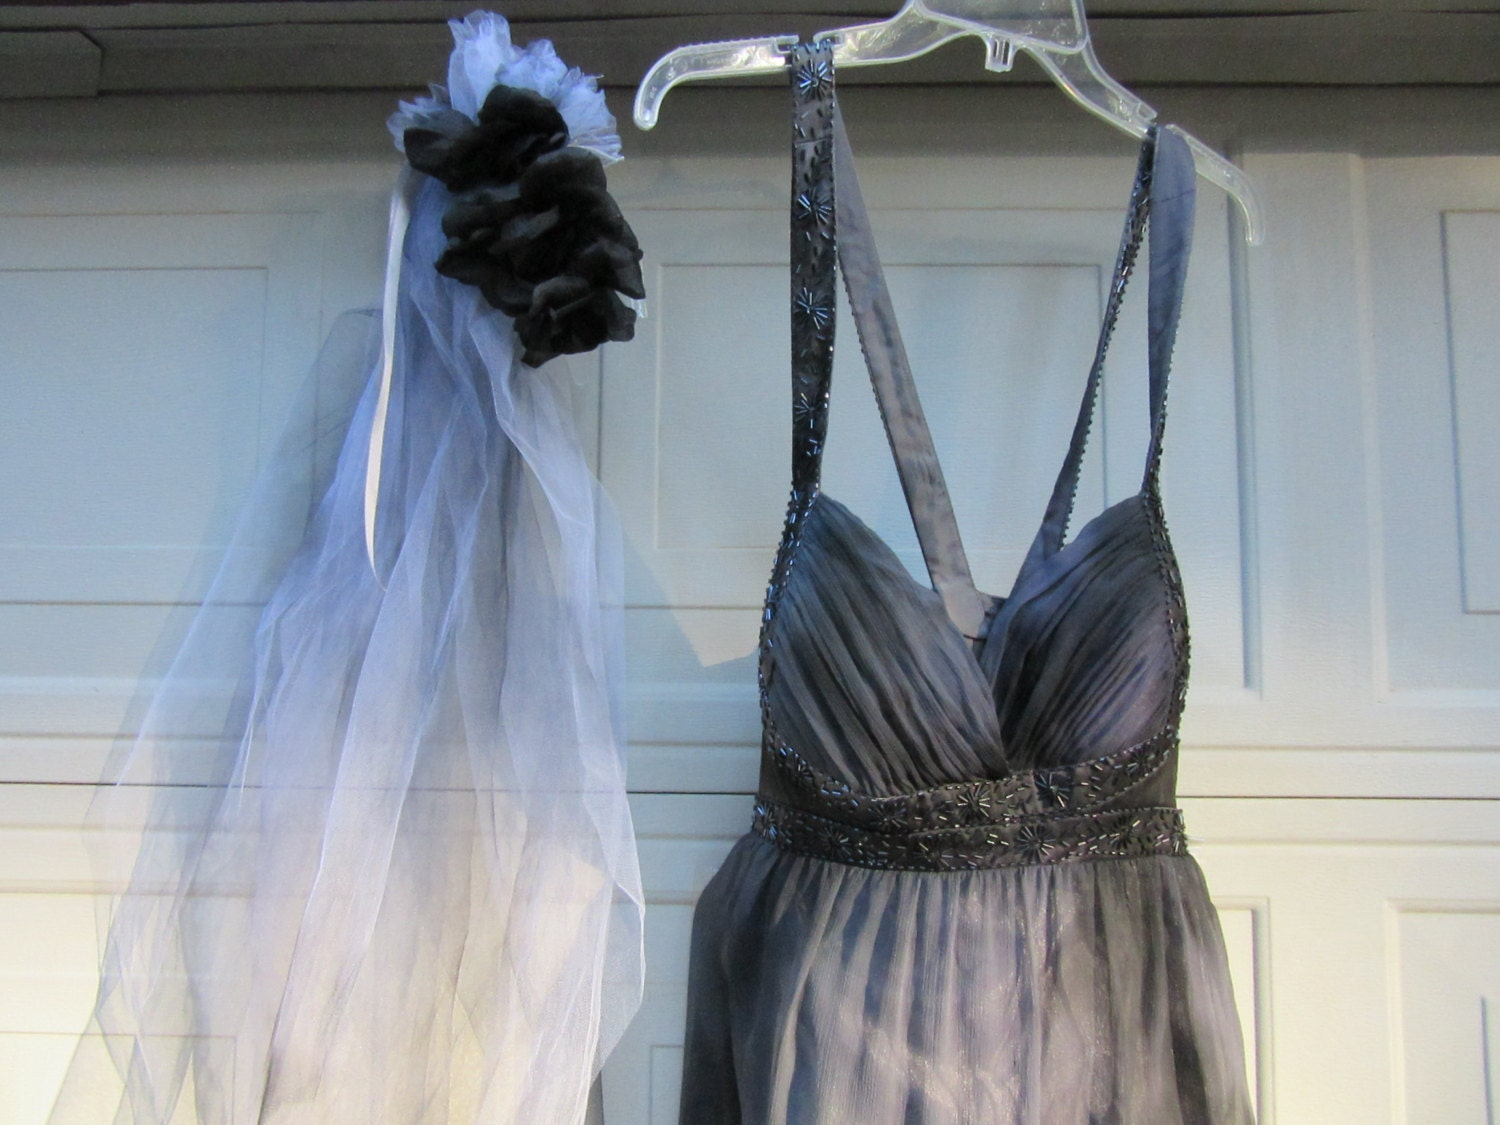 Corpse Bride Wedding Gown: Day Of The Dead Corpse Bride Costume Dress Womens Size 14 XL